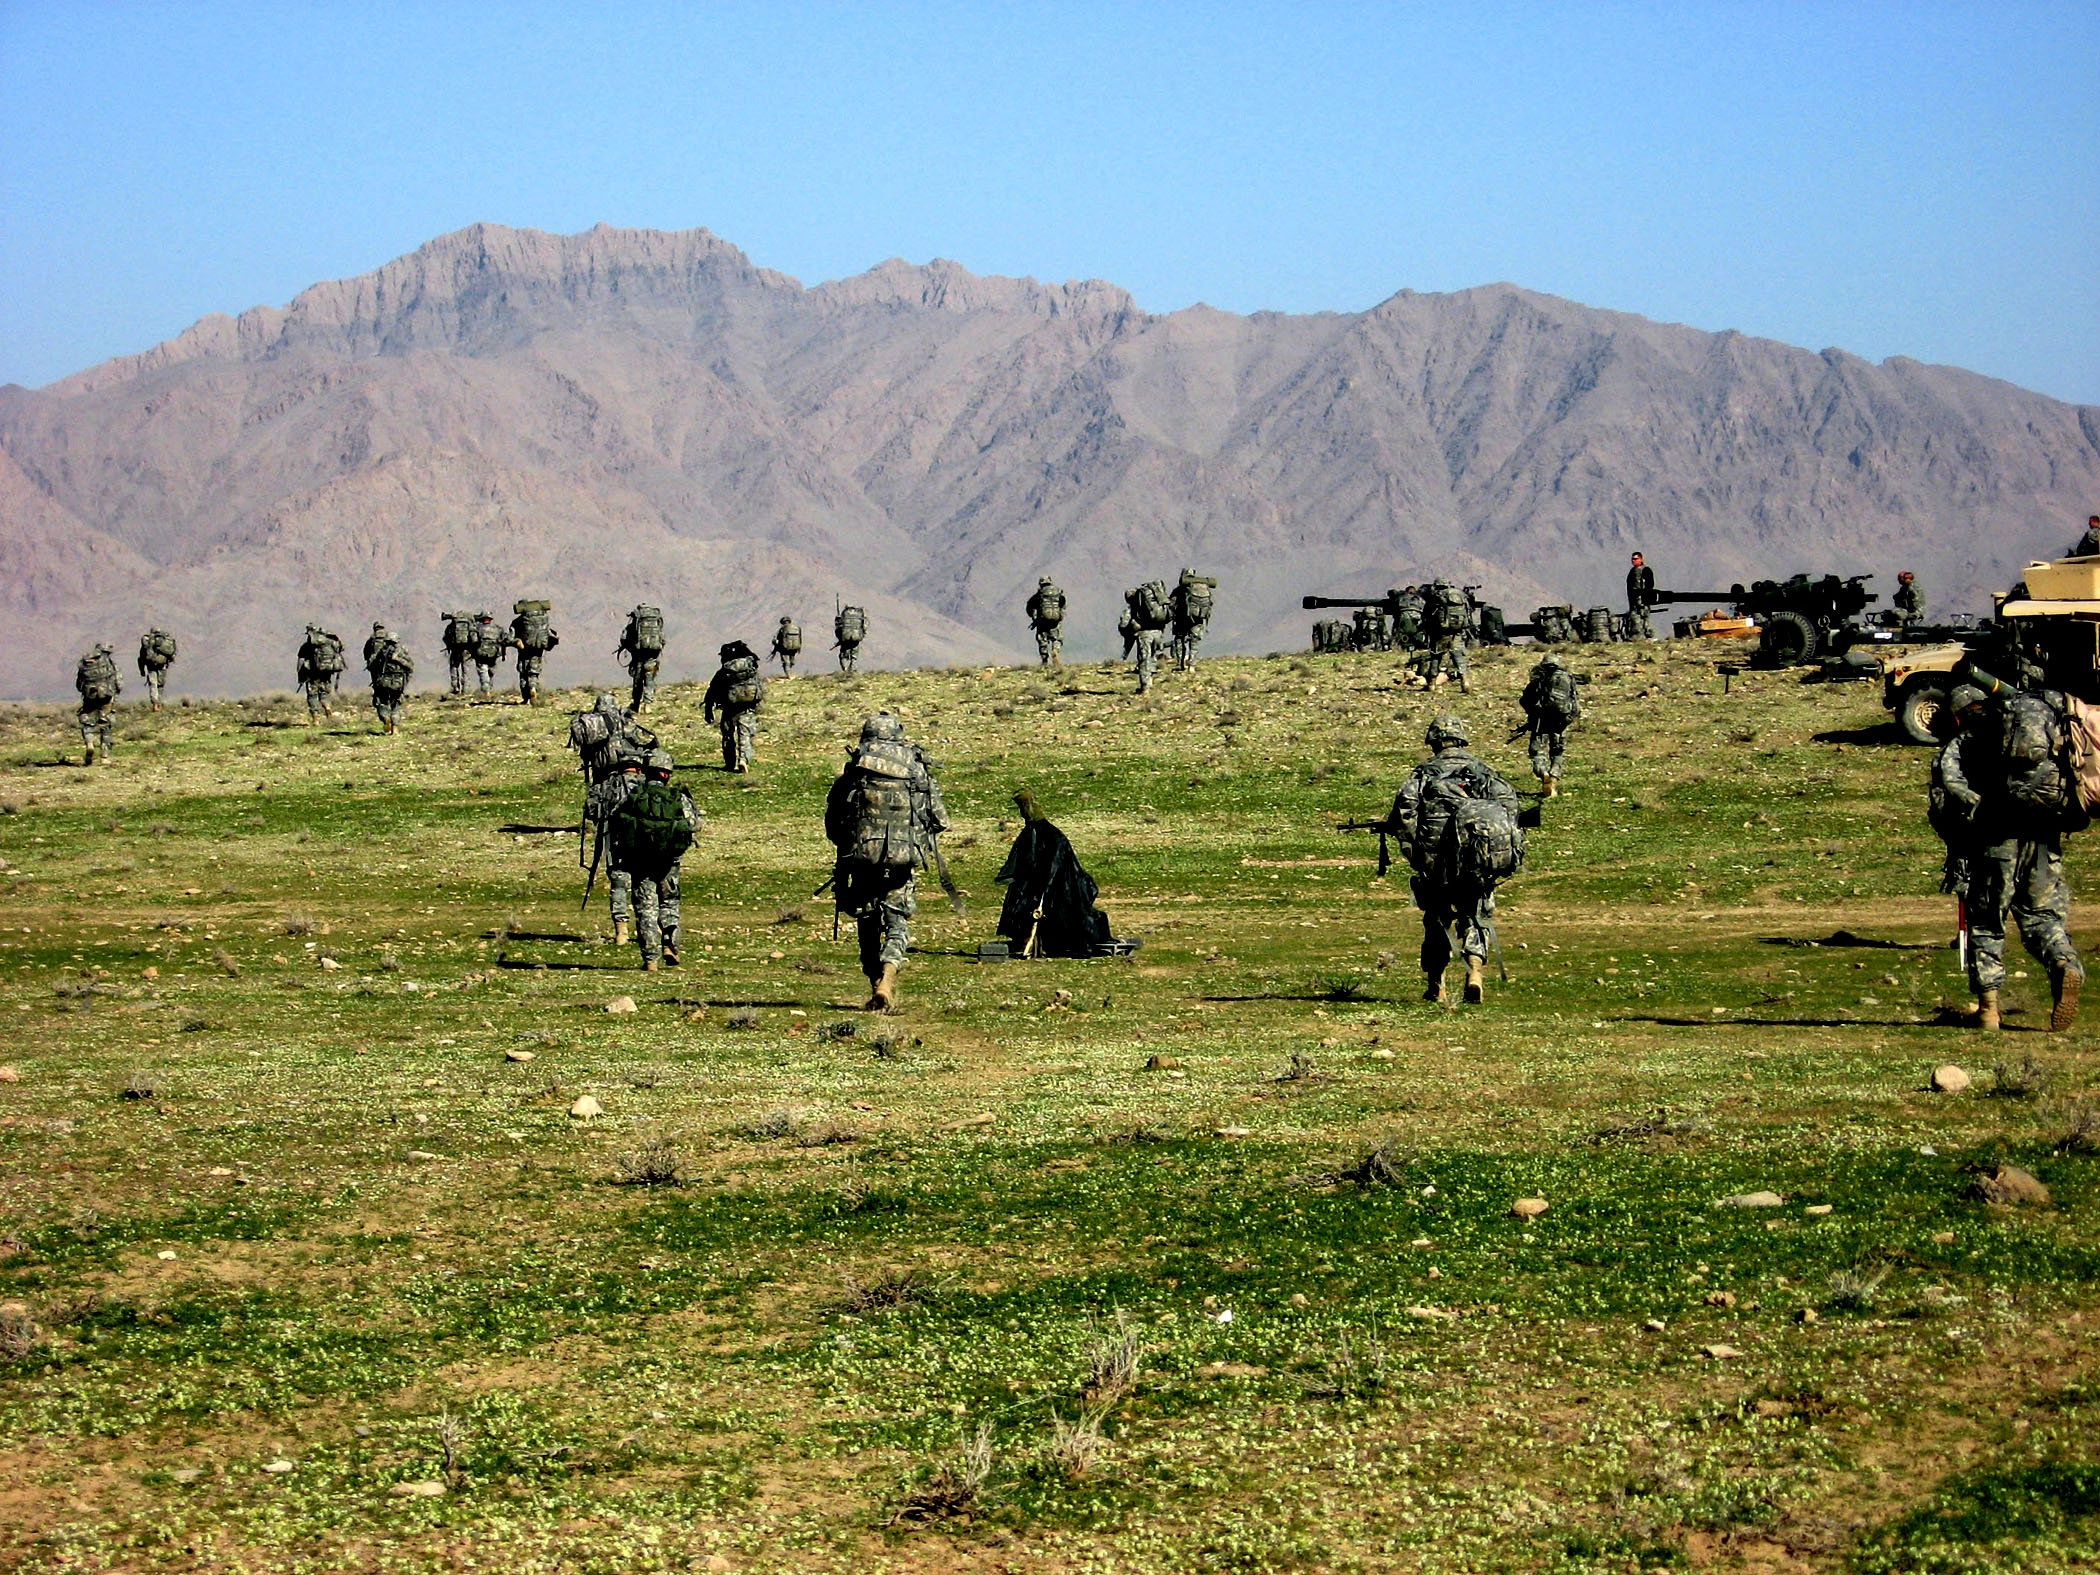 http://upload.wikimedia.org/wikipedia/commons/e/e0/82nd_Airborne_Division_in_Afghanistan_(Operation_Achilles).jpg